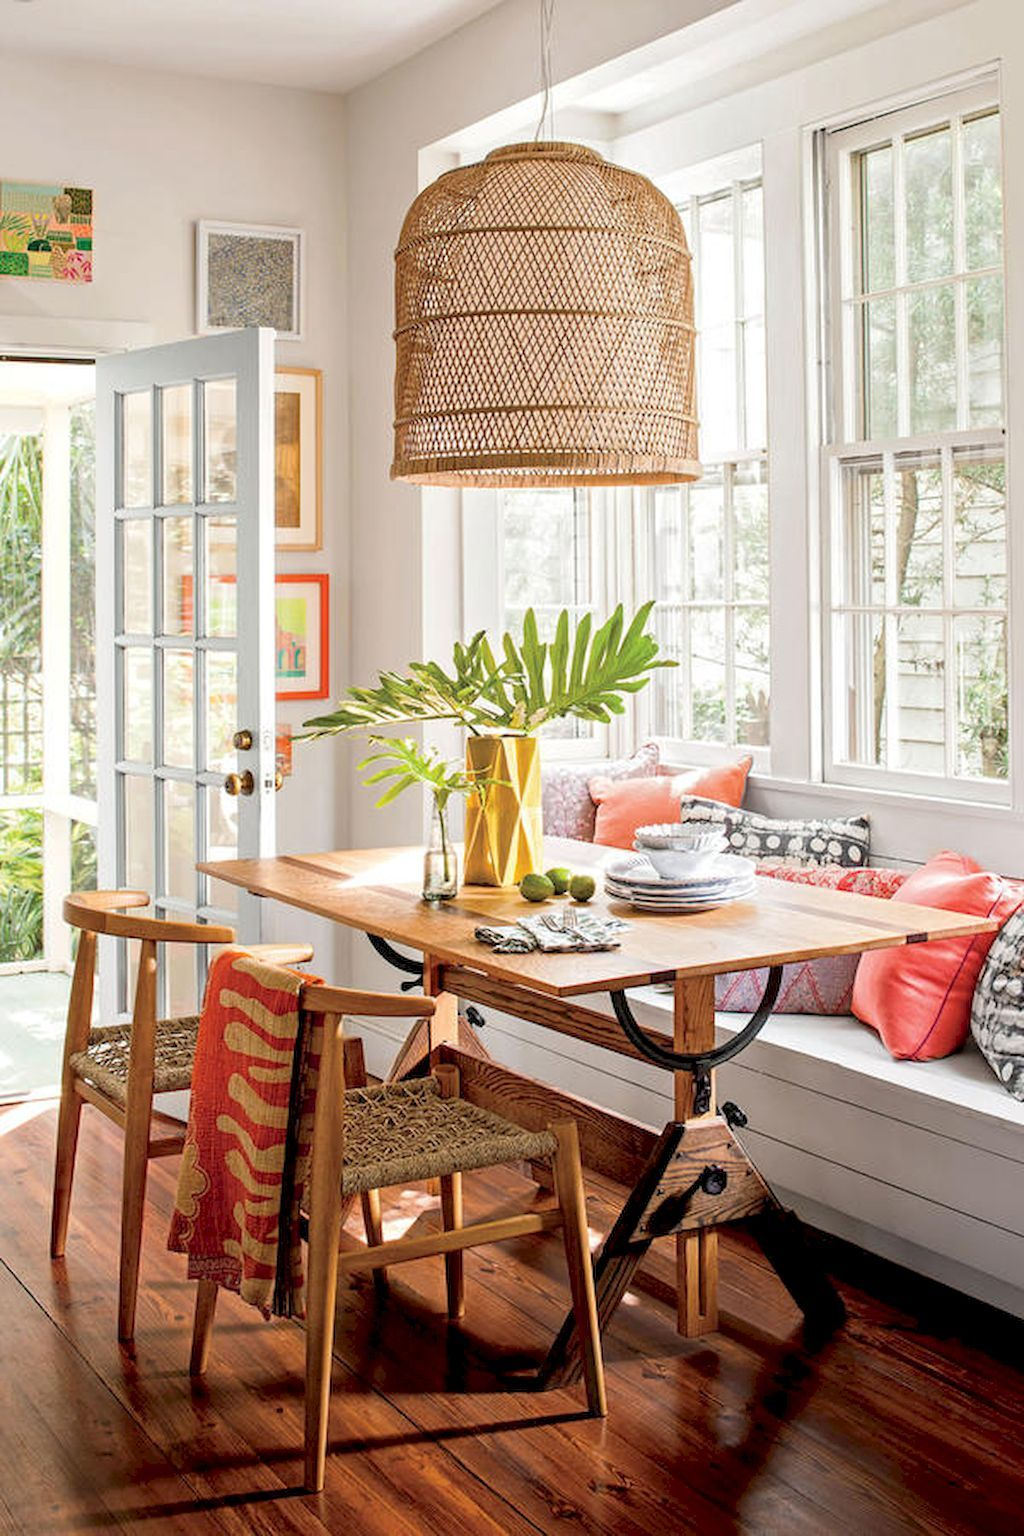 40 small space breakfast nook apartment ideas on a budget